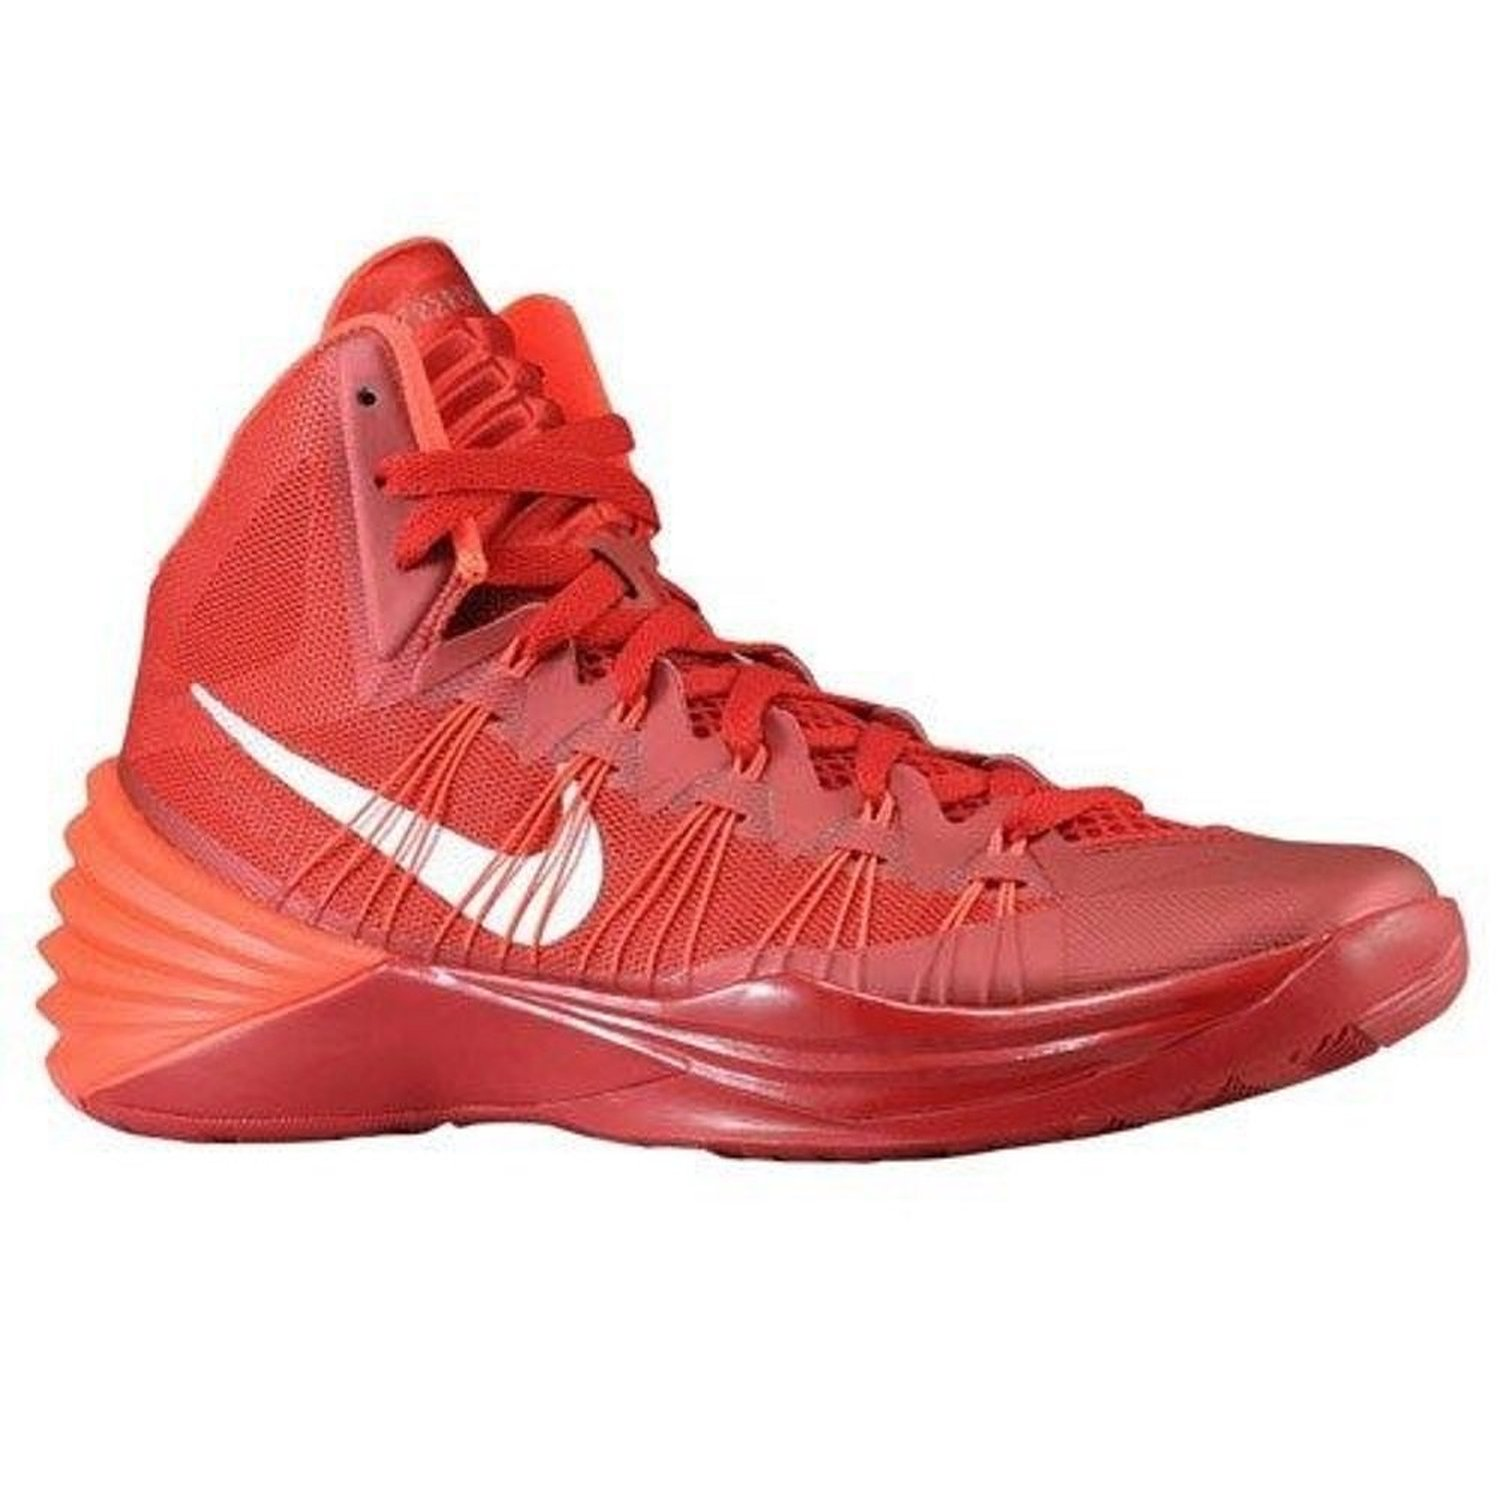 brand new eac4c a8e7f Get Quotations · Mens Nike Hyperdunk 2013 Tb Shoes Size 13.5 Gym Red Silver  Crimson 584433 600